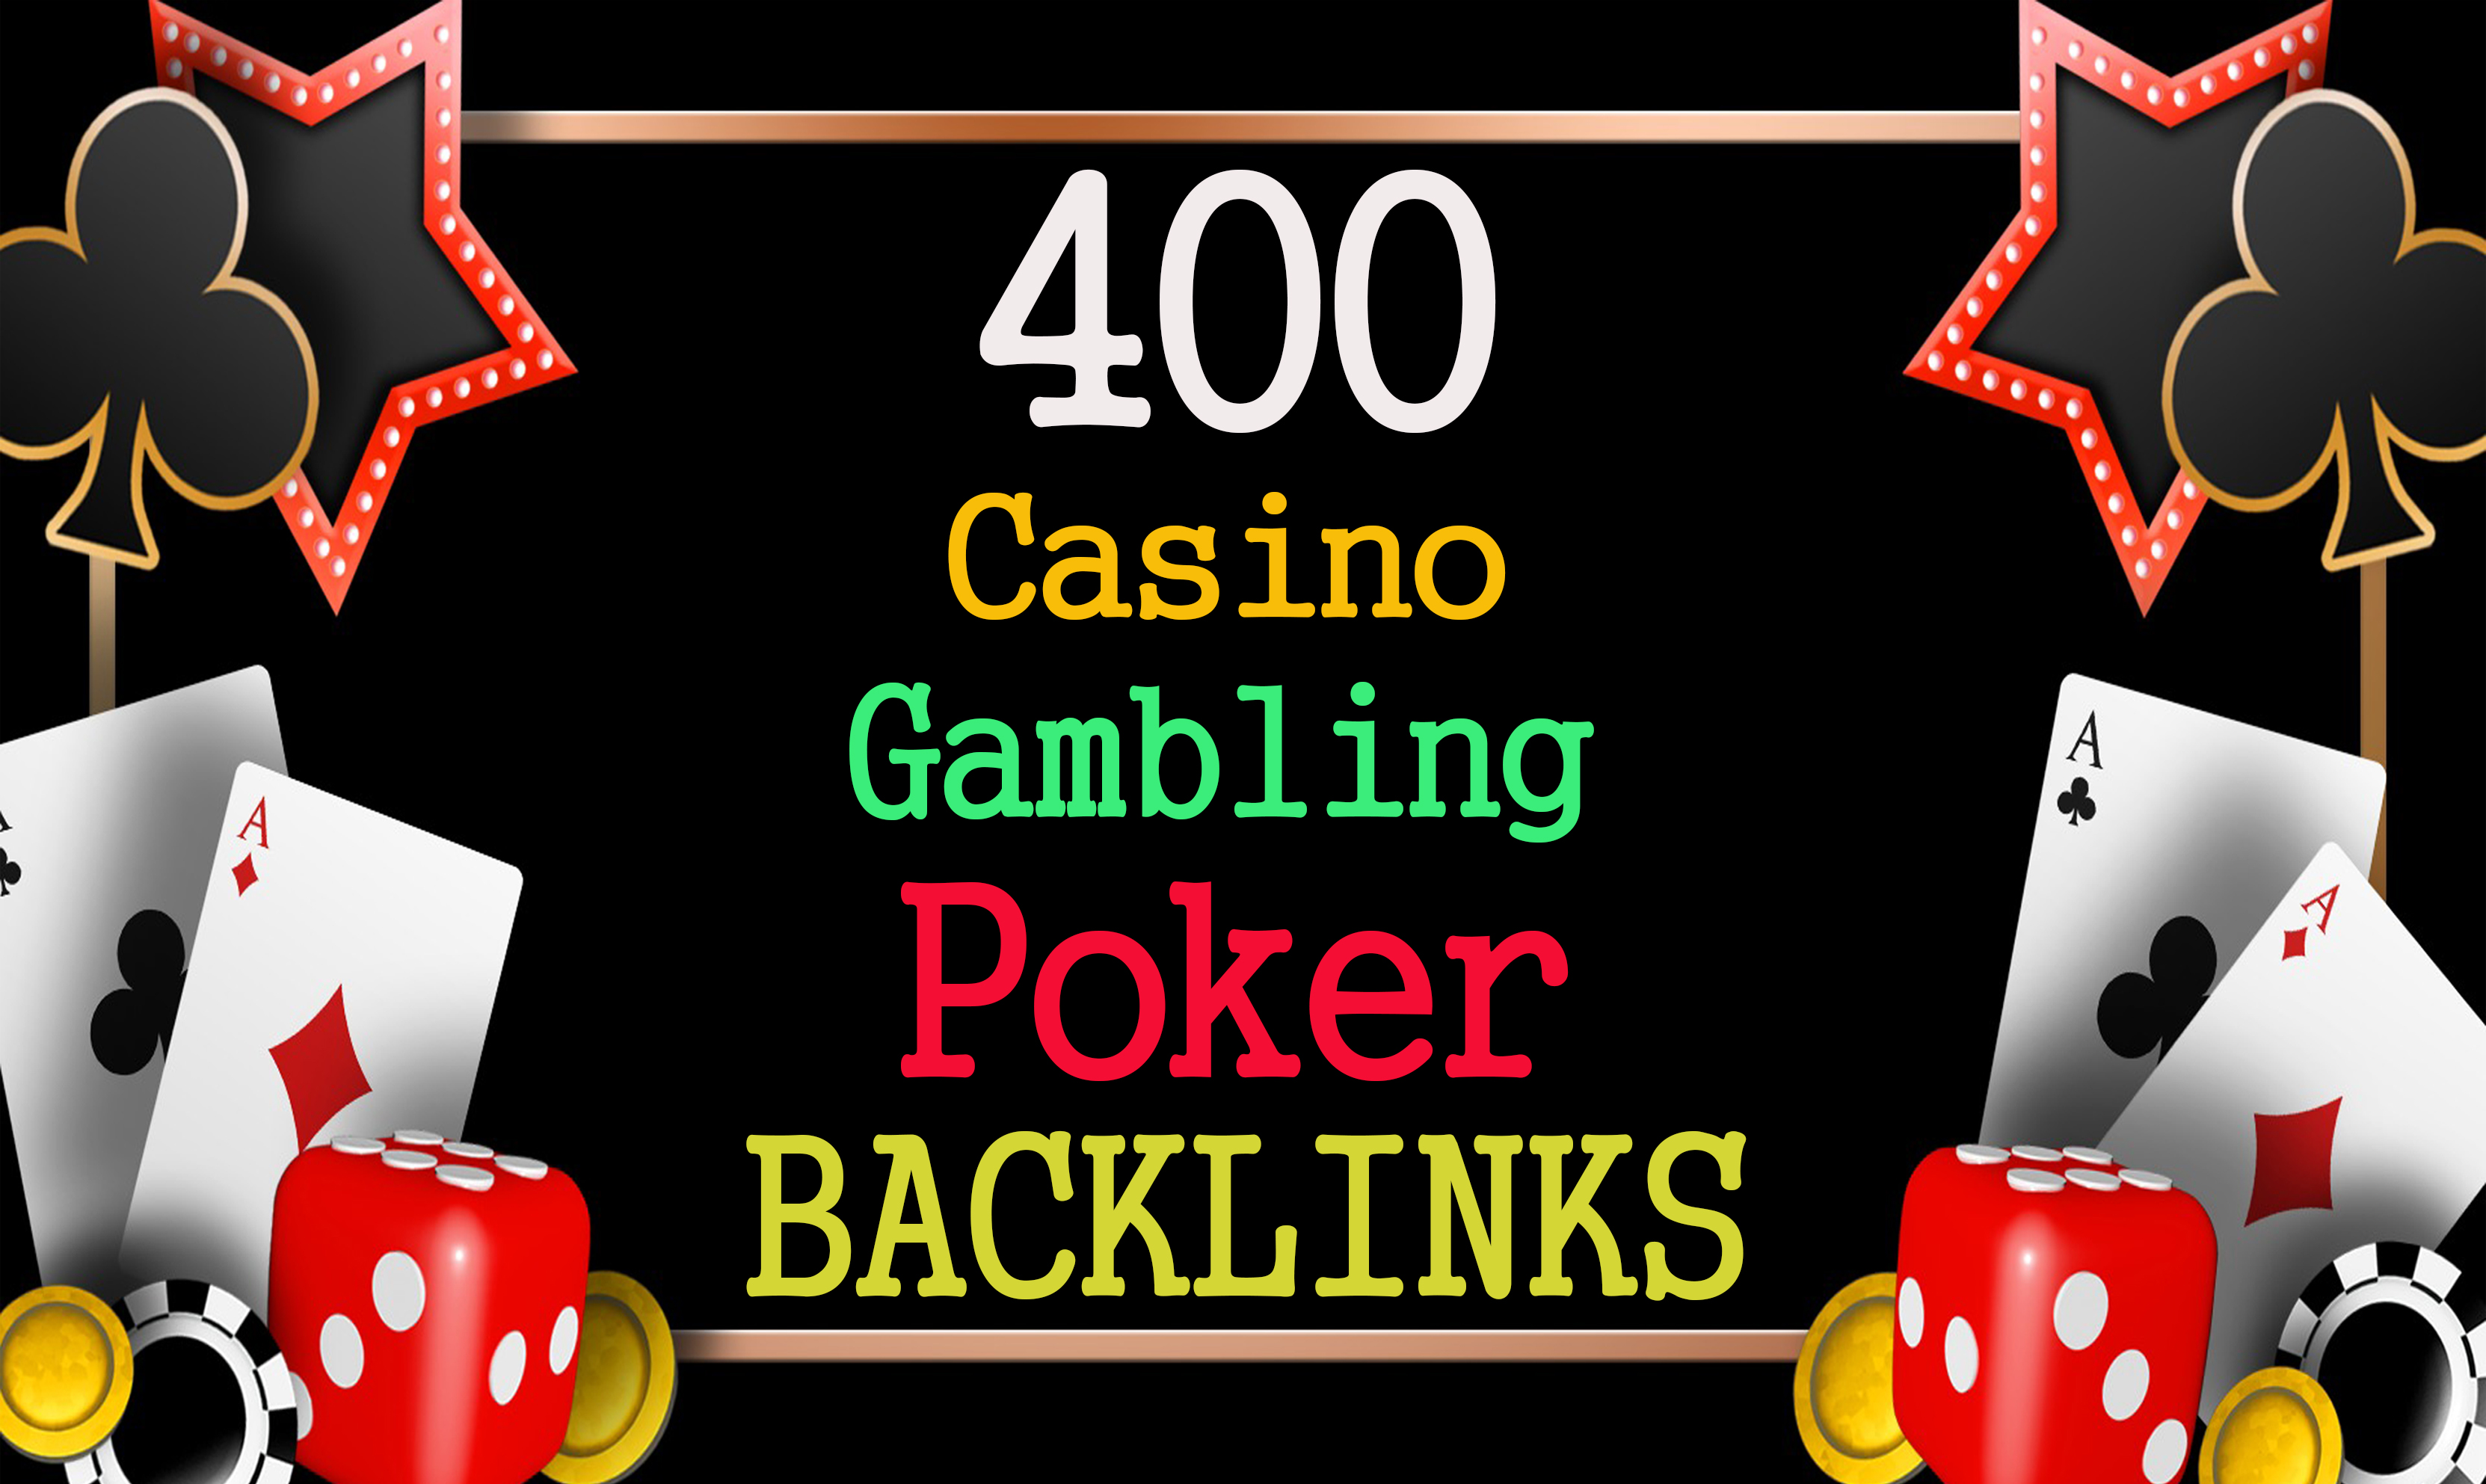 Permanent powerful judi bola,  Casino,  Gambling,  Poker,  Sports High Quality profile Backlinks